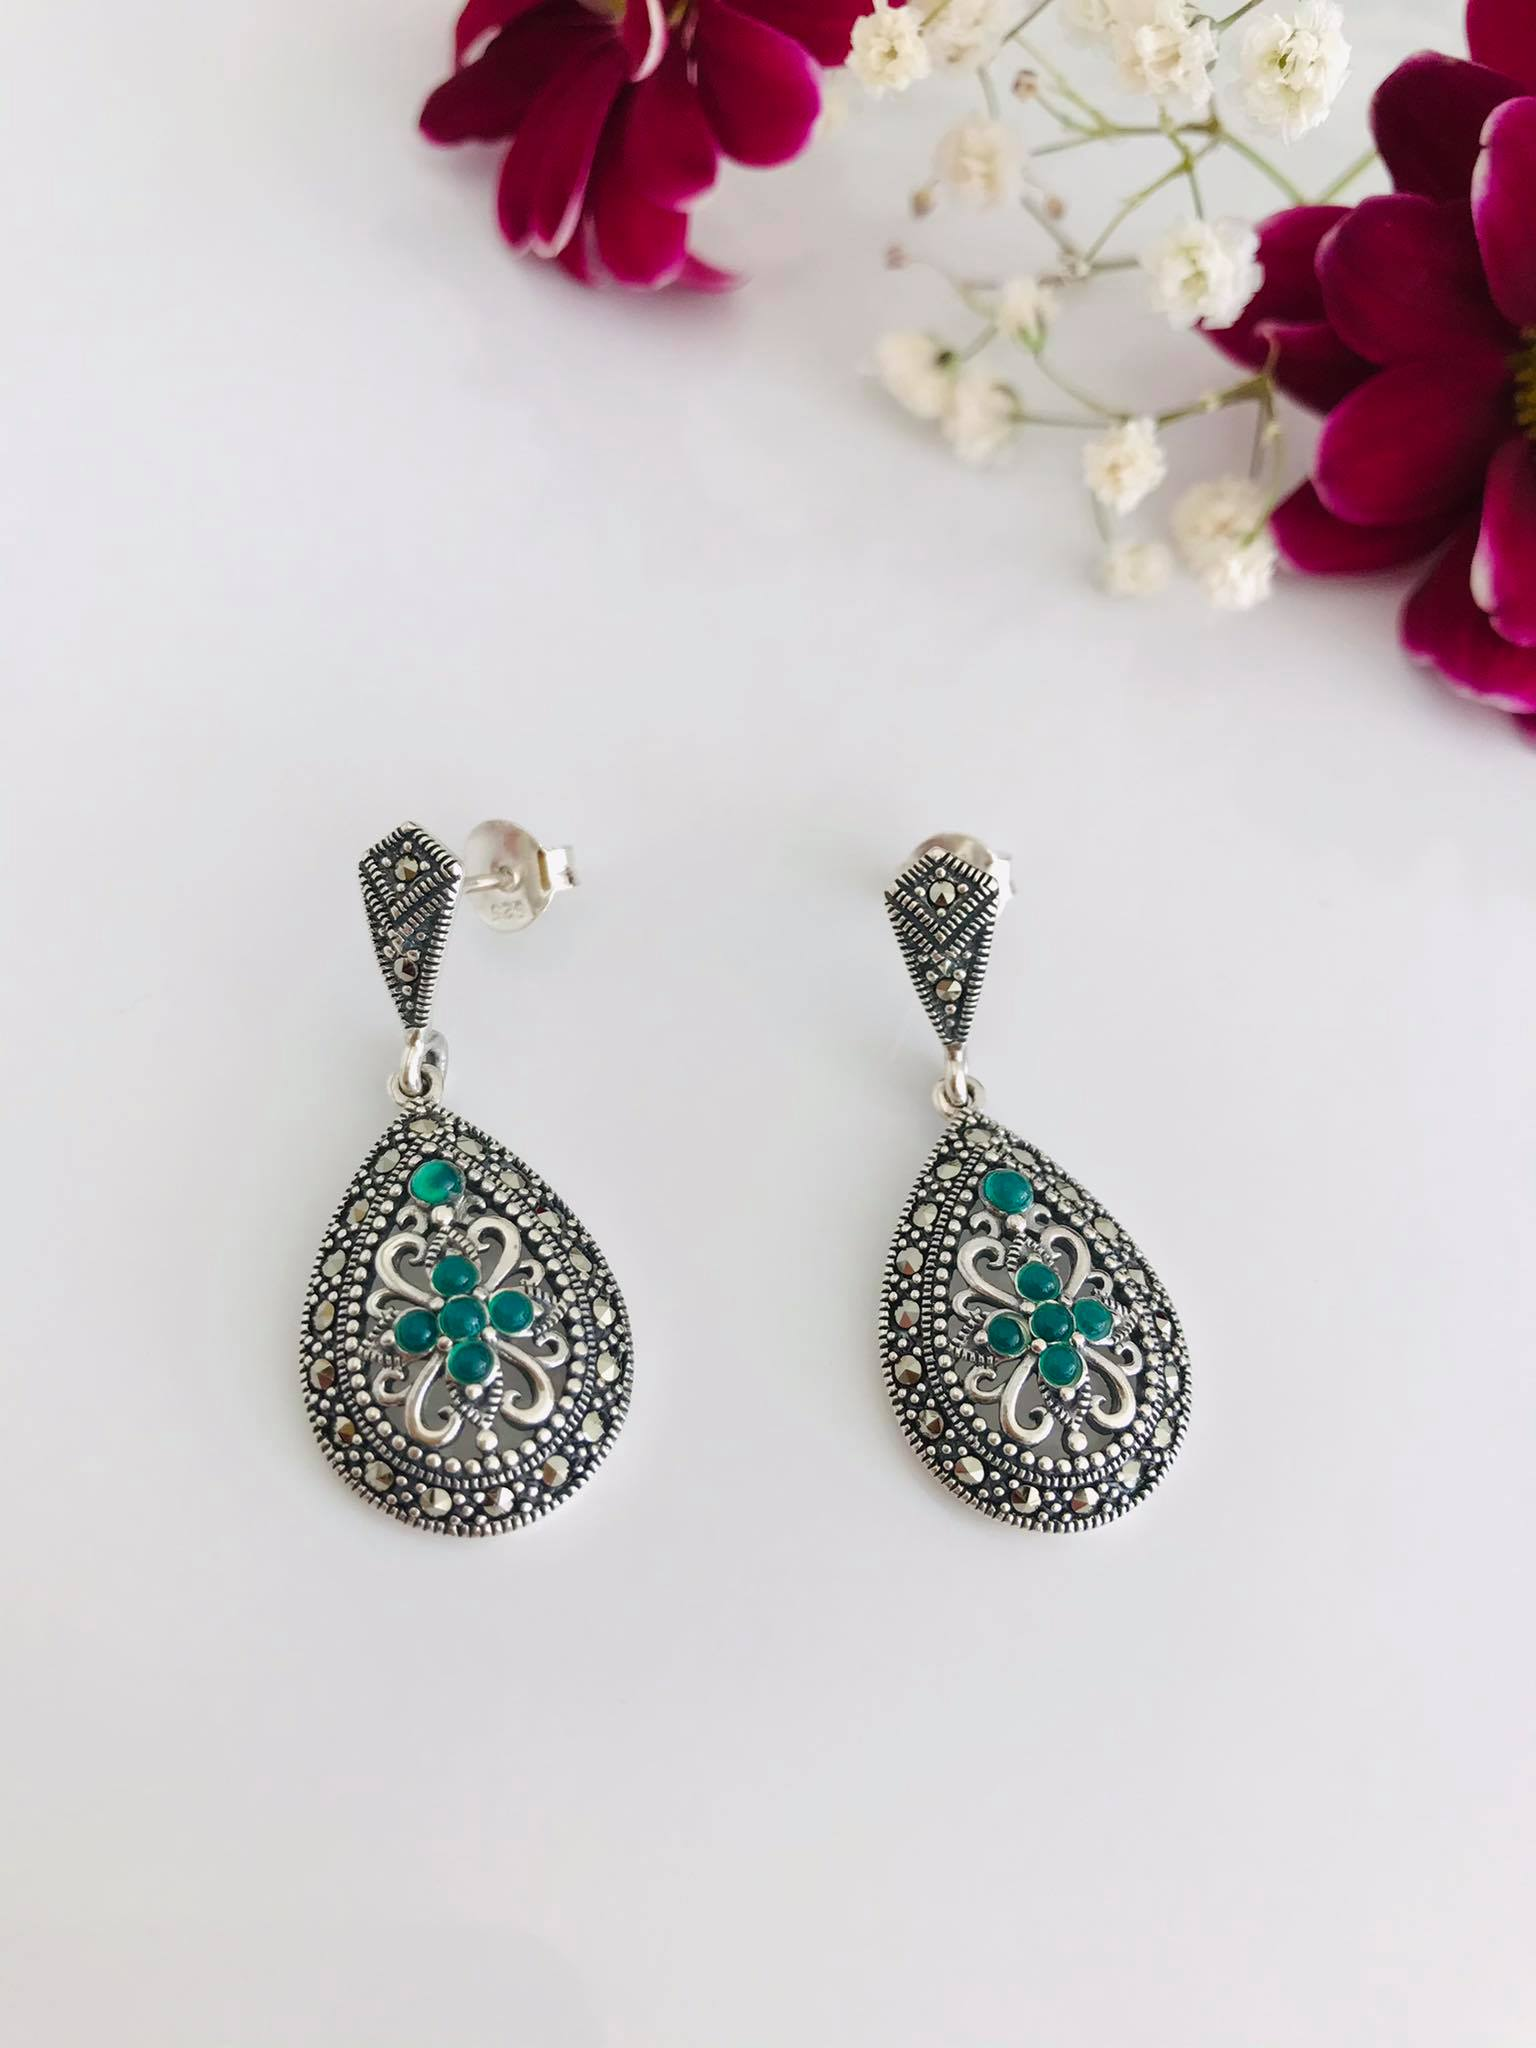 Pear drop Sterling Silver with Green Onyx and Marcasite Earrings Image